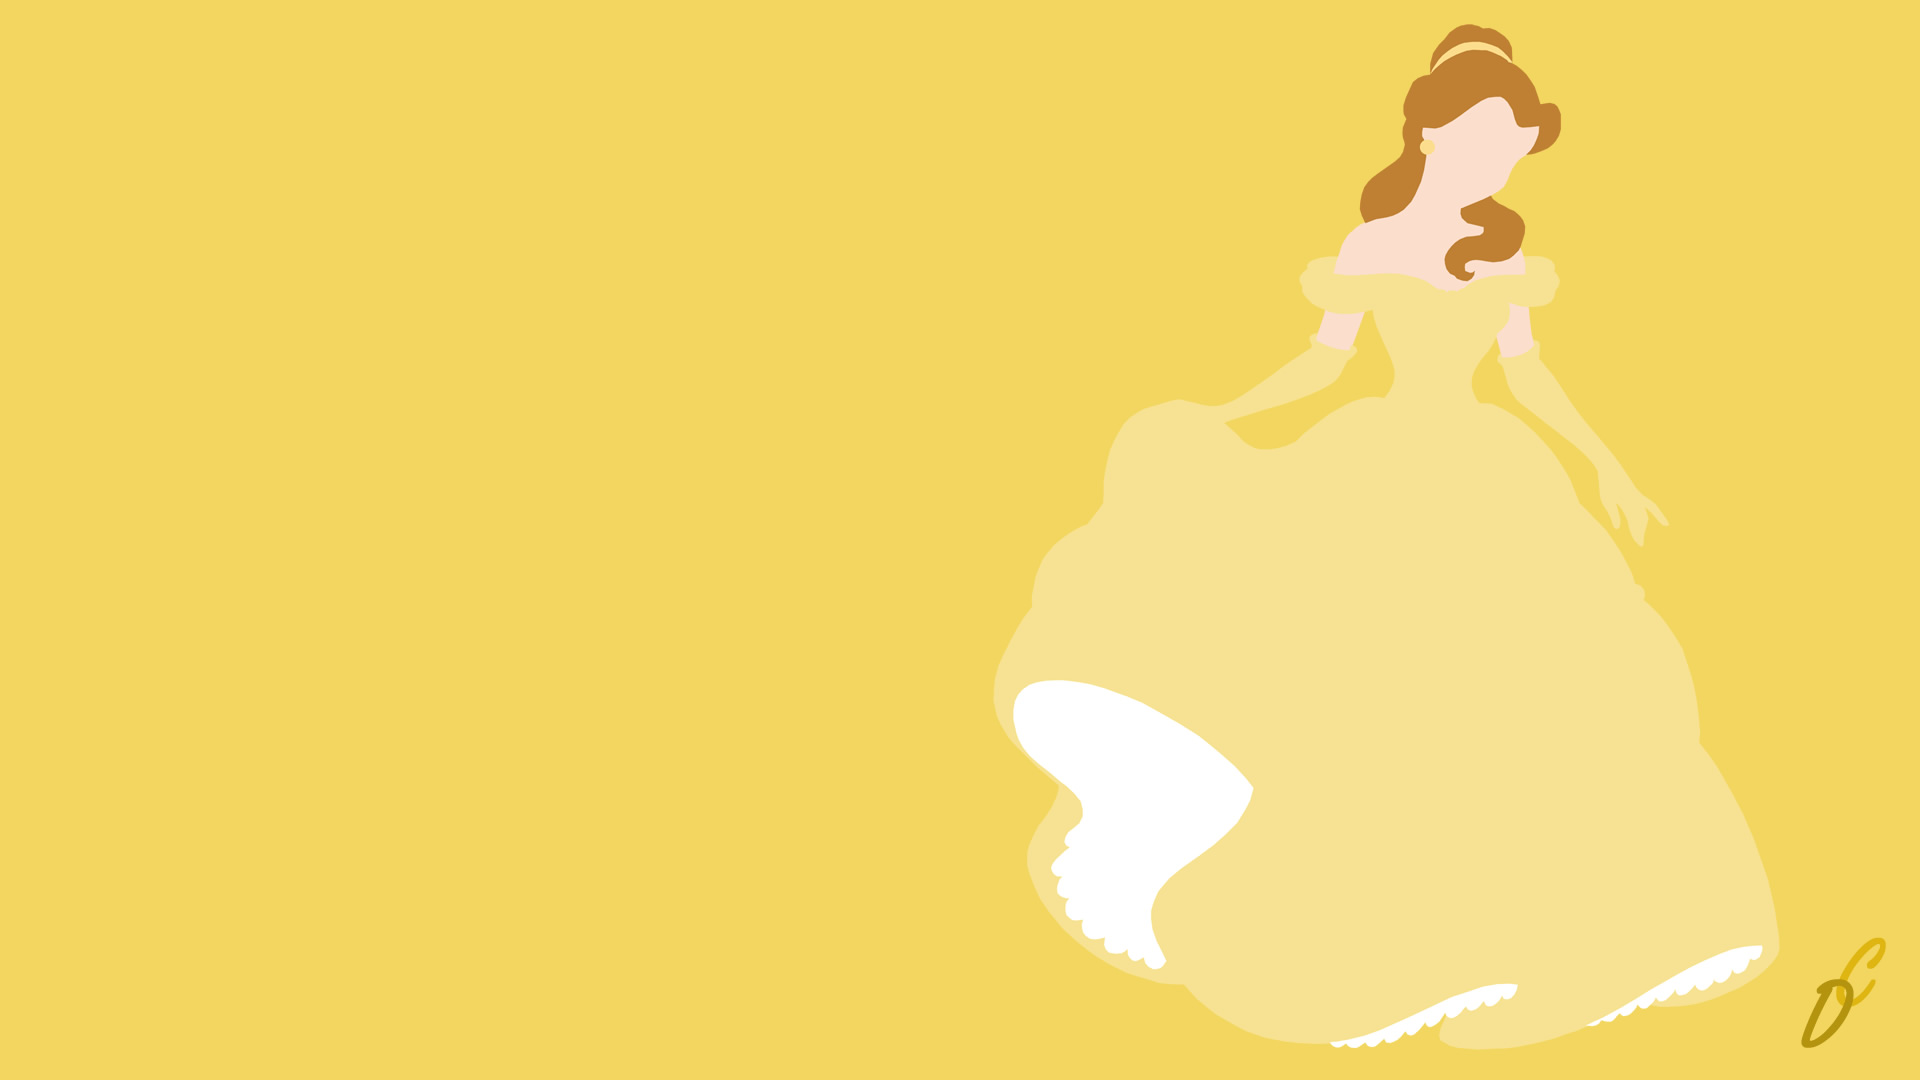 Wallpaper disney princess belle wallpaper sportstle for Minimalist homepage